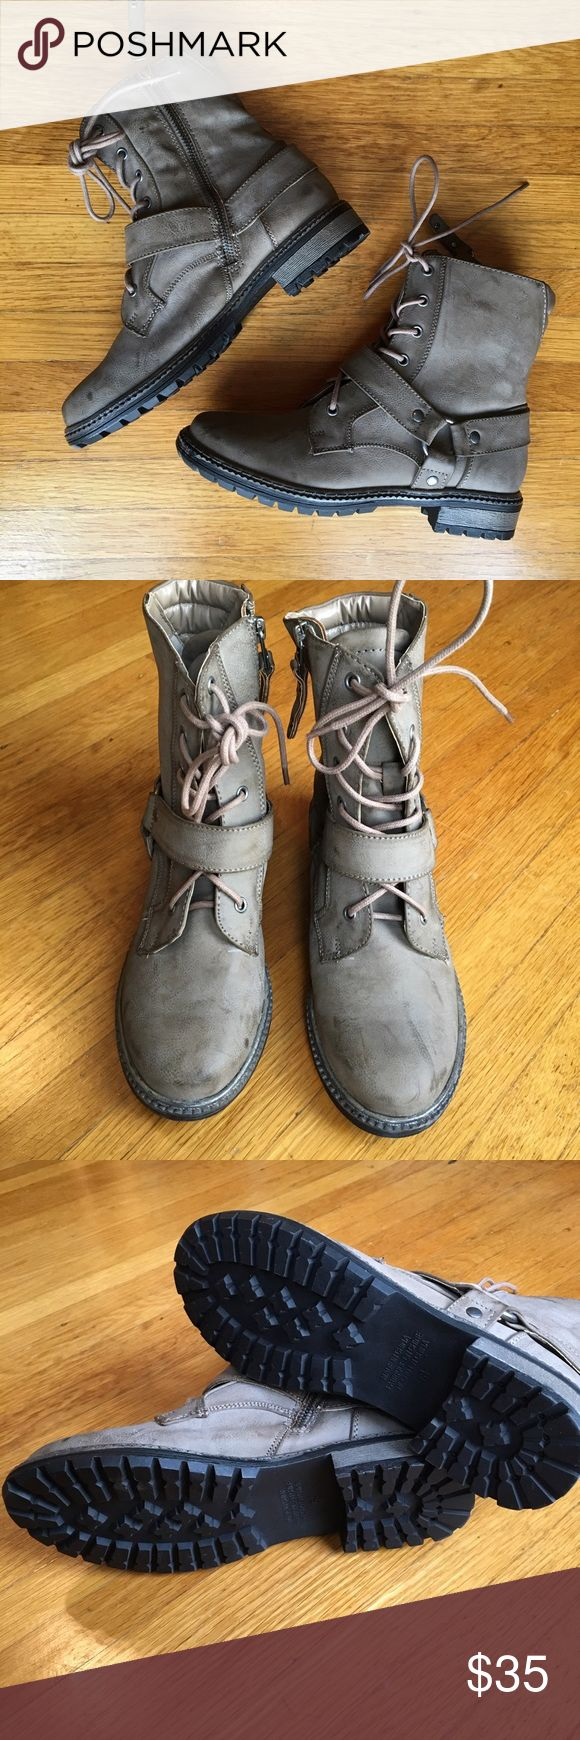 American Eagle Tan Harness Military Boots NWOT! Never worn! Women's American Eagle Outfitters size 6.5 tan, distressed harness military boots. Great with leggings to show off the lace-up and harness details but with a side zipper for easy off and on. American Eagle Outfitters Shoes Combat & Moto Boots